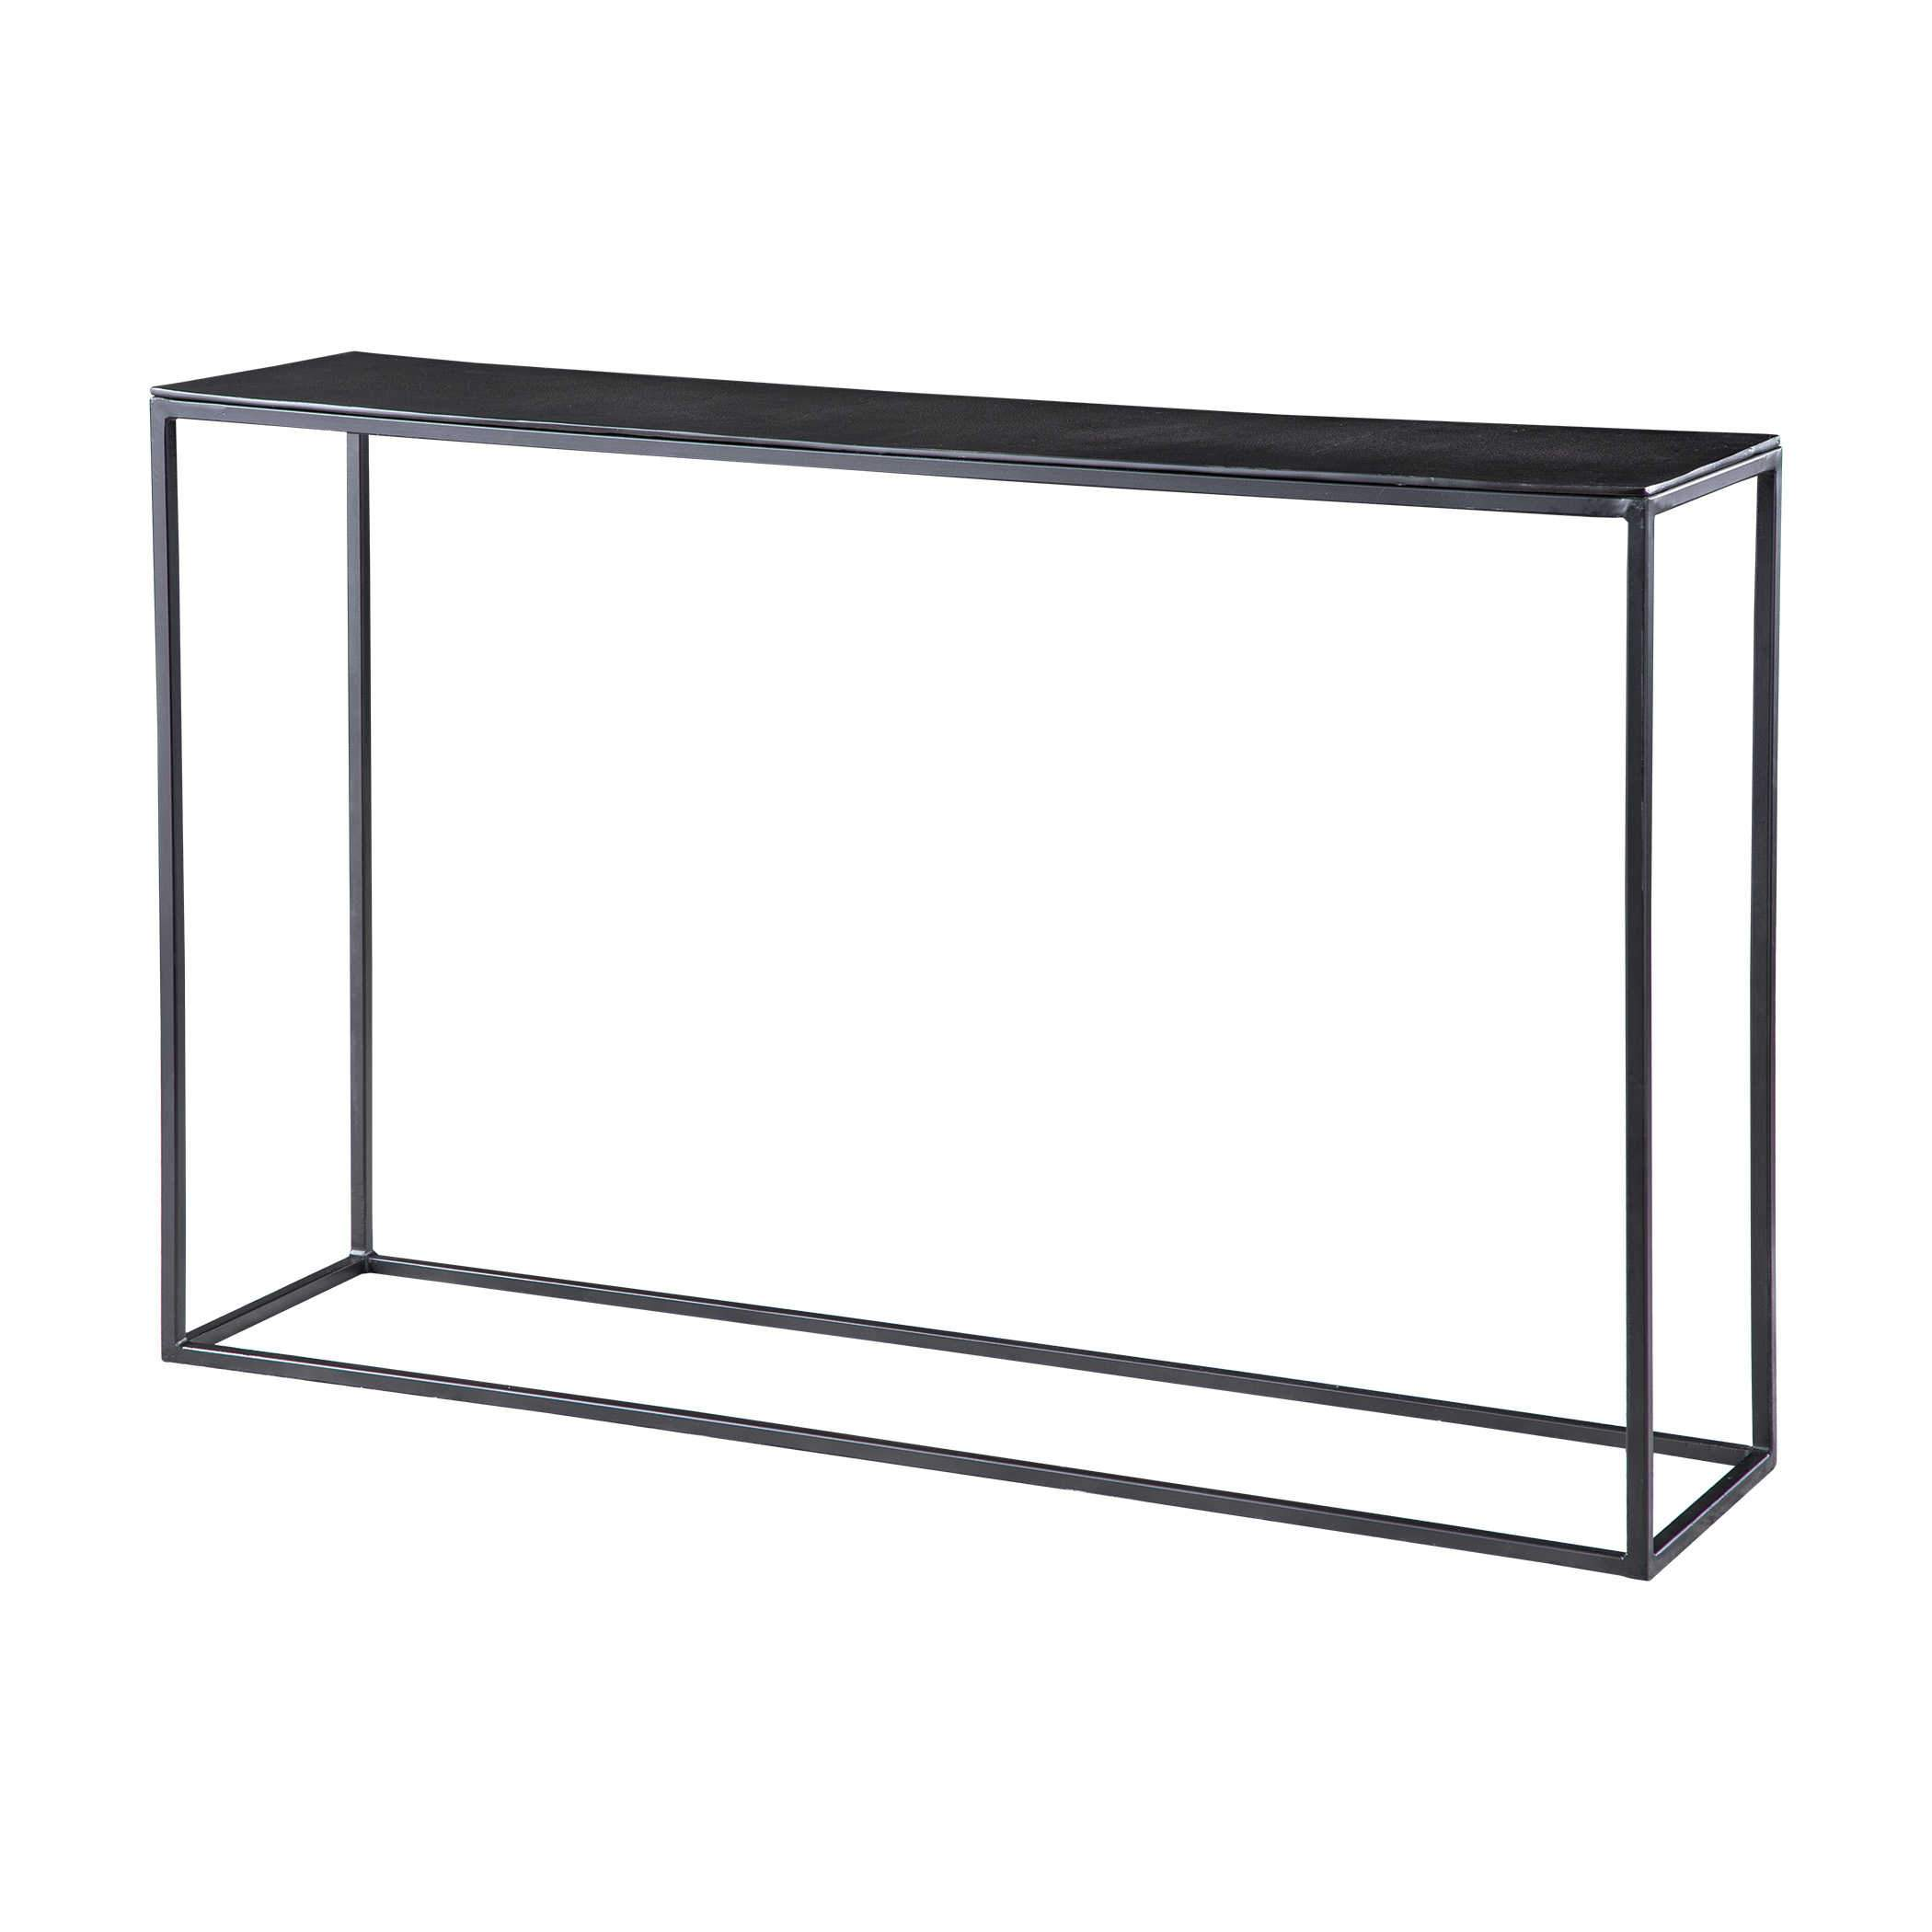 25051 Coreene Console Table Small Uttermost Short black iron metal console table narrow sleek plain modern entry table sofa table thin metal